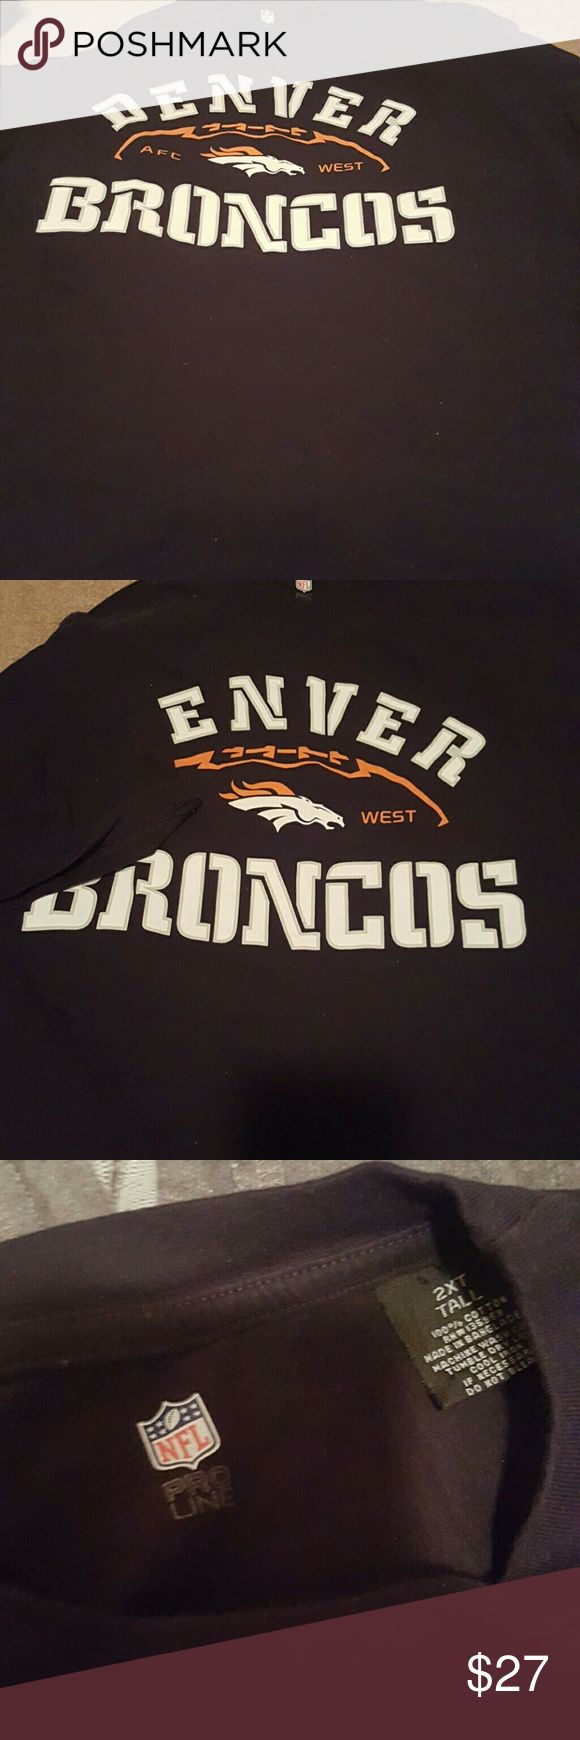 Denver Broncos t-shirt 2XL Tall Broncos t-shirt, excellent condition worn once NFL Pro Line Shirts Tees - Short Sleeve